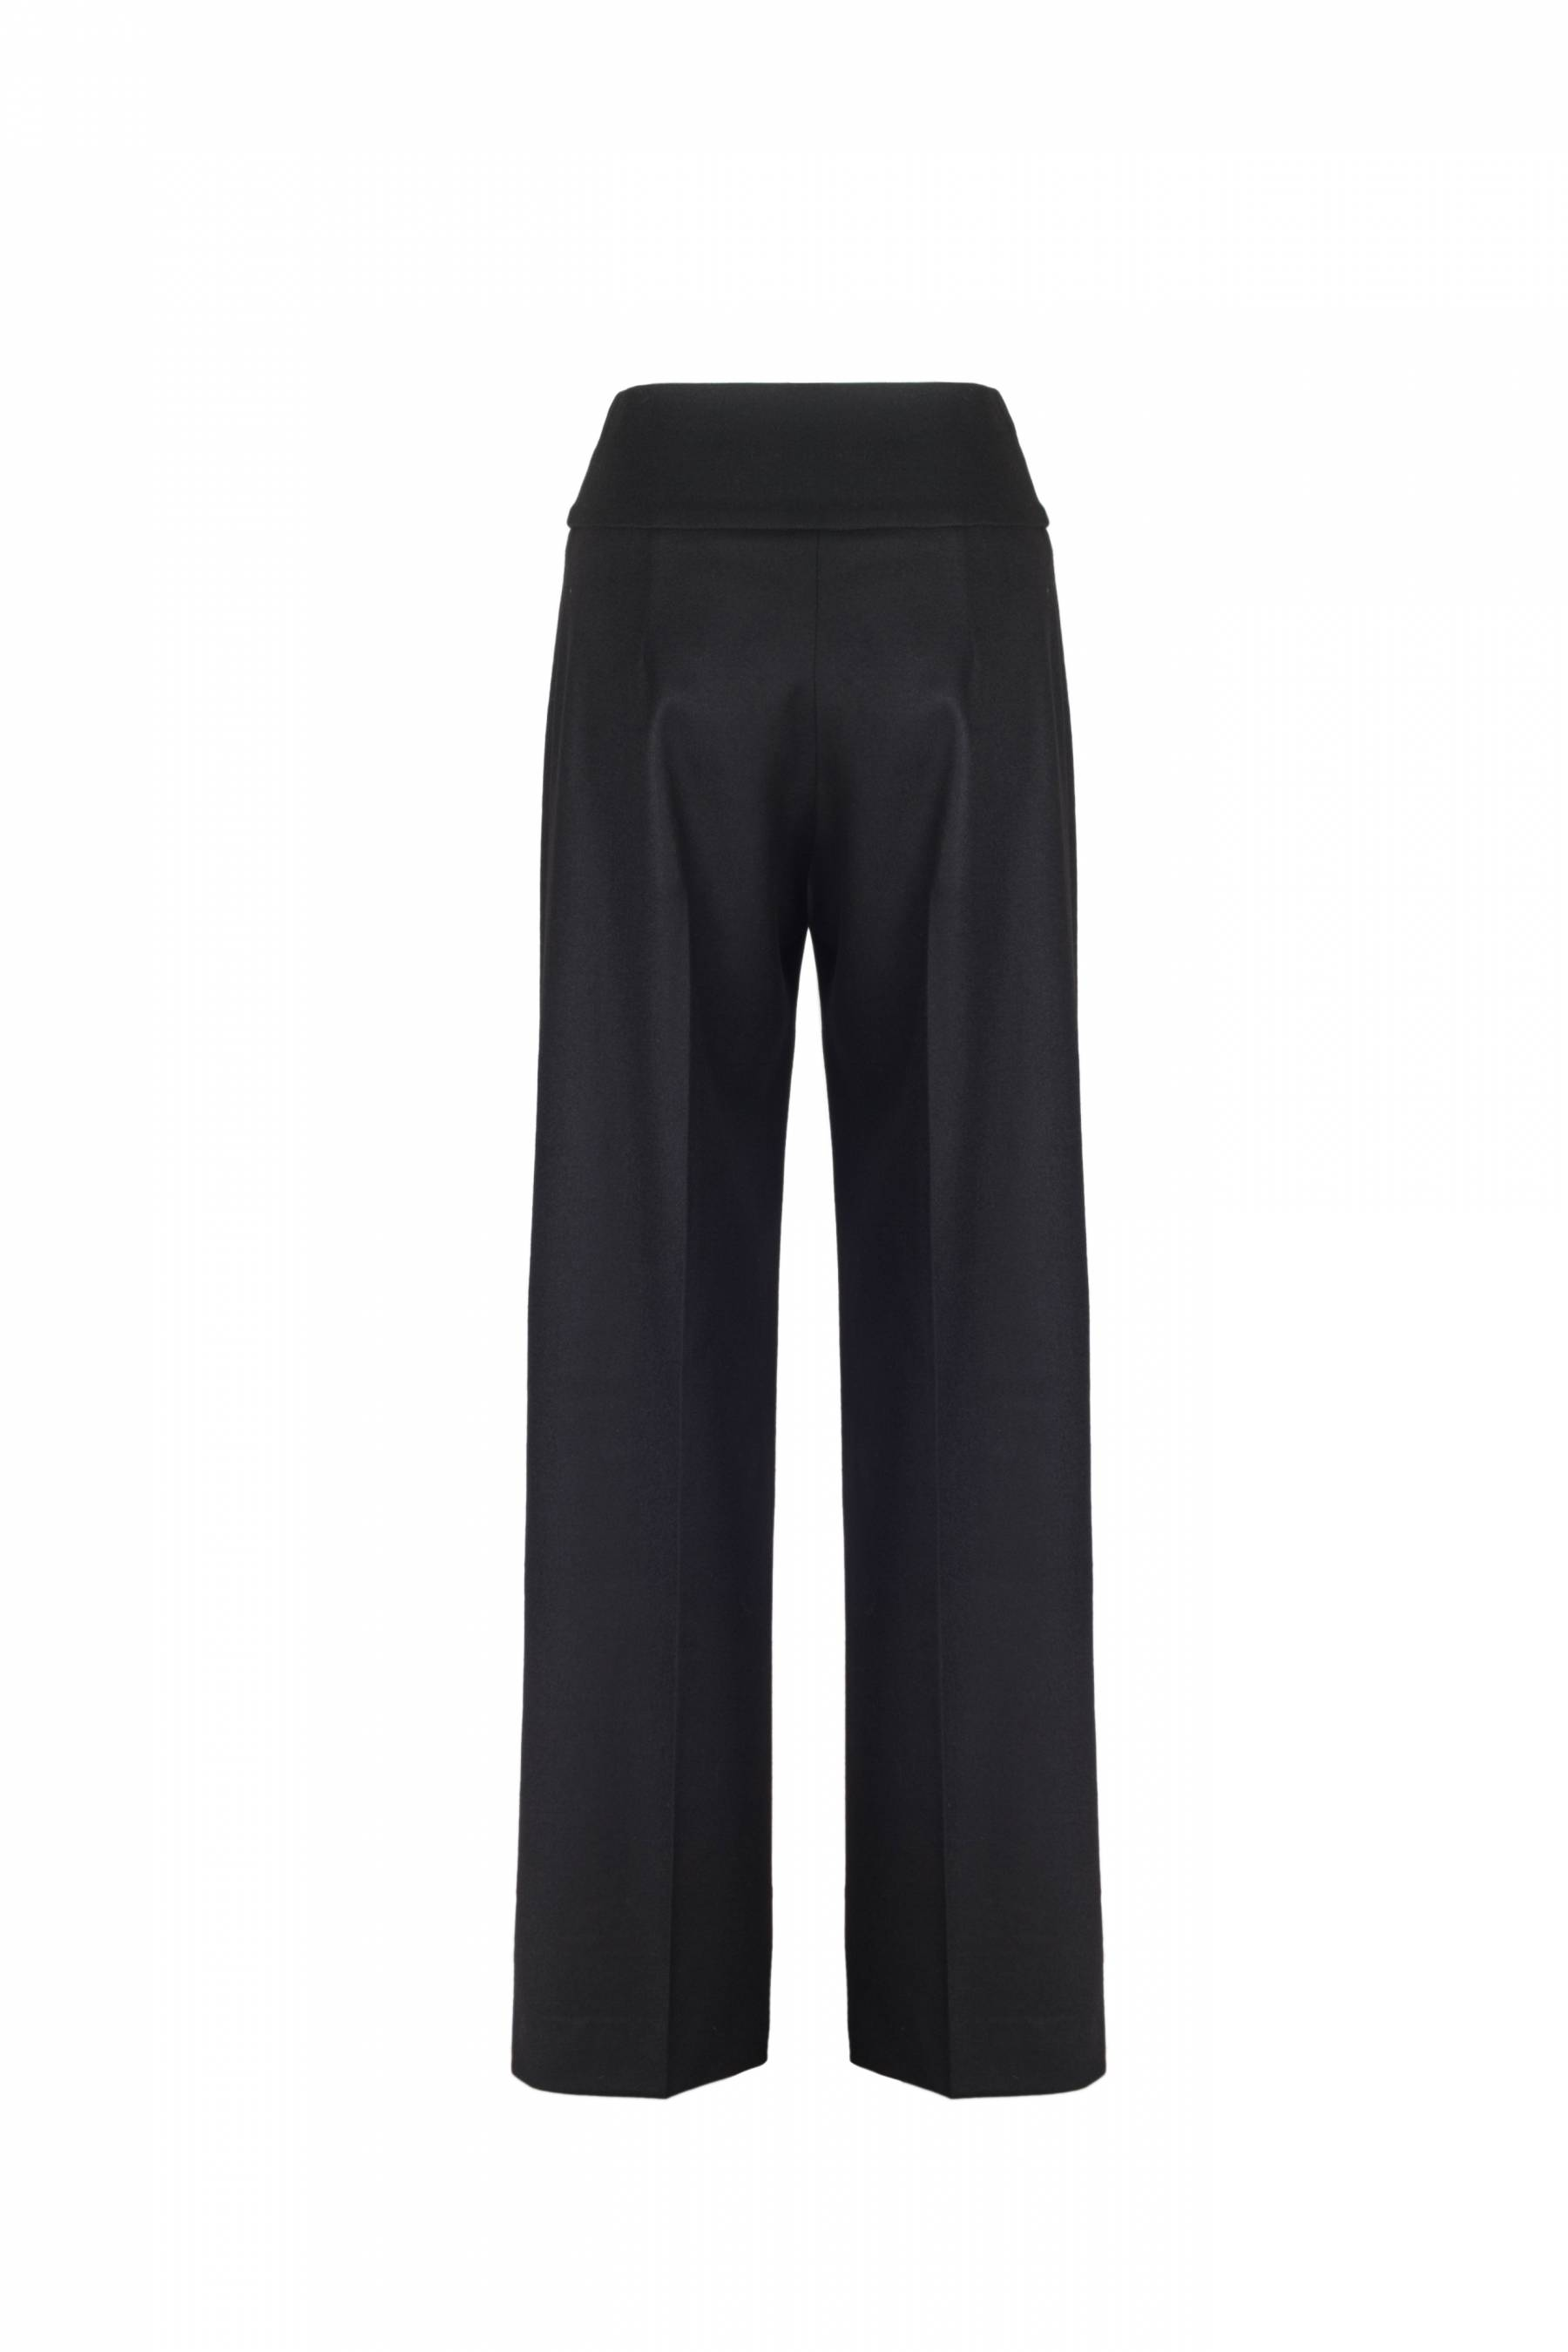 High Waisted Wide Leg Trouser1